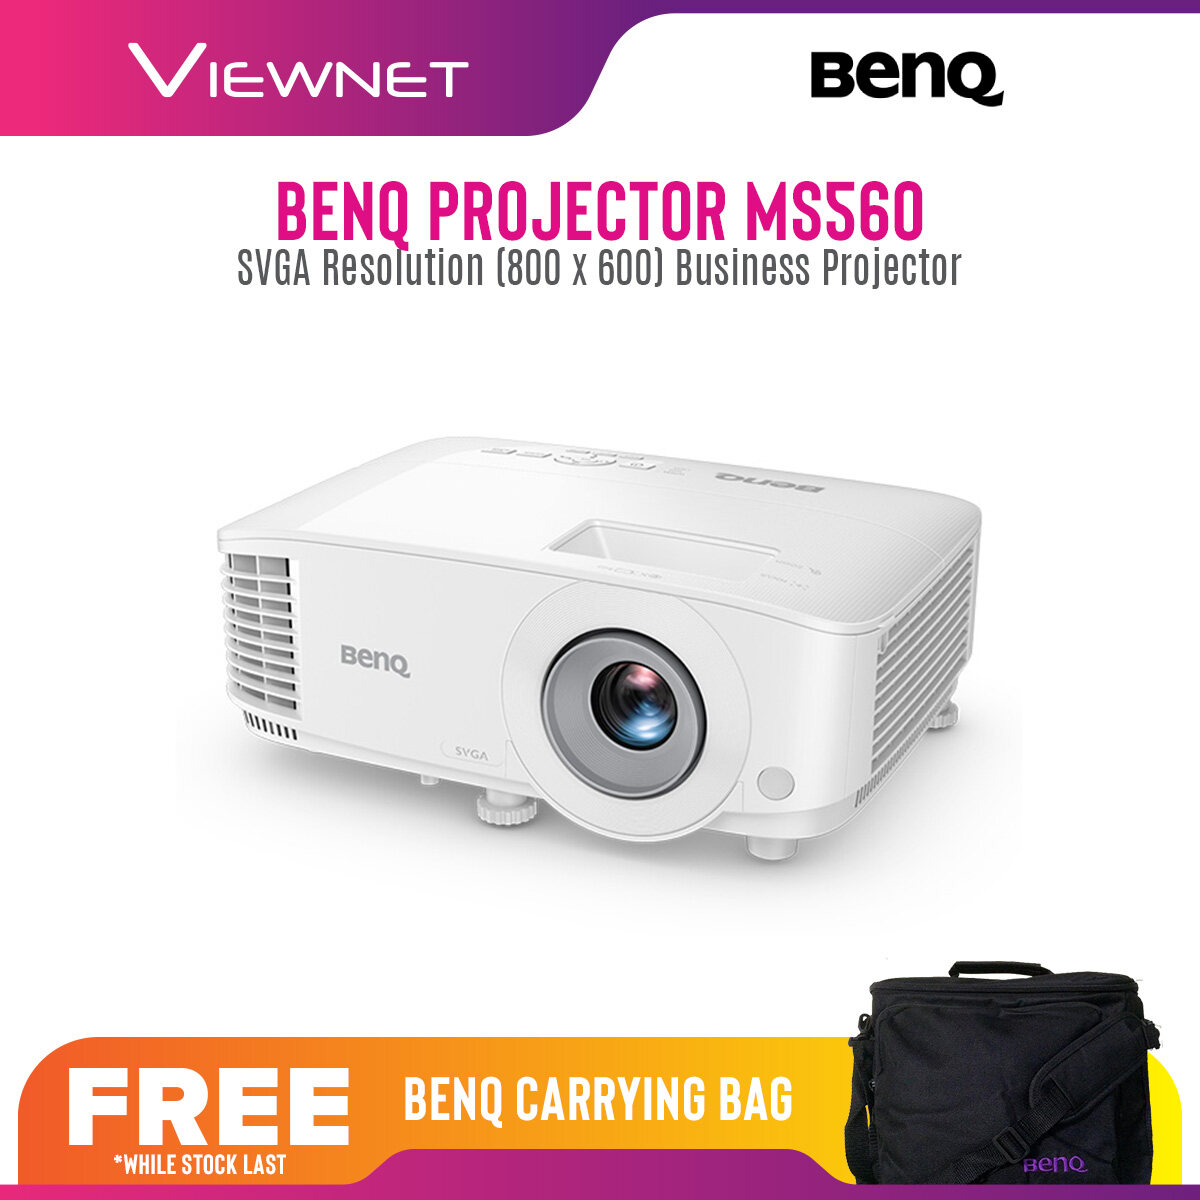 BenQ Projector MS560 with SVGA Resolution (800 x 600), 4000 Lumens, 15000 Lamp Life in Eco Mode